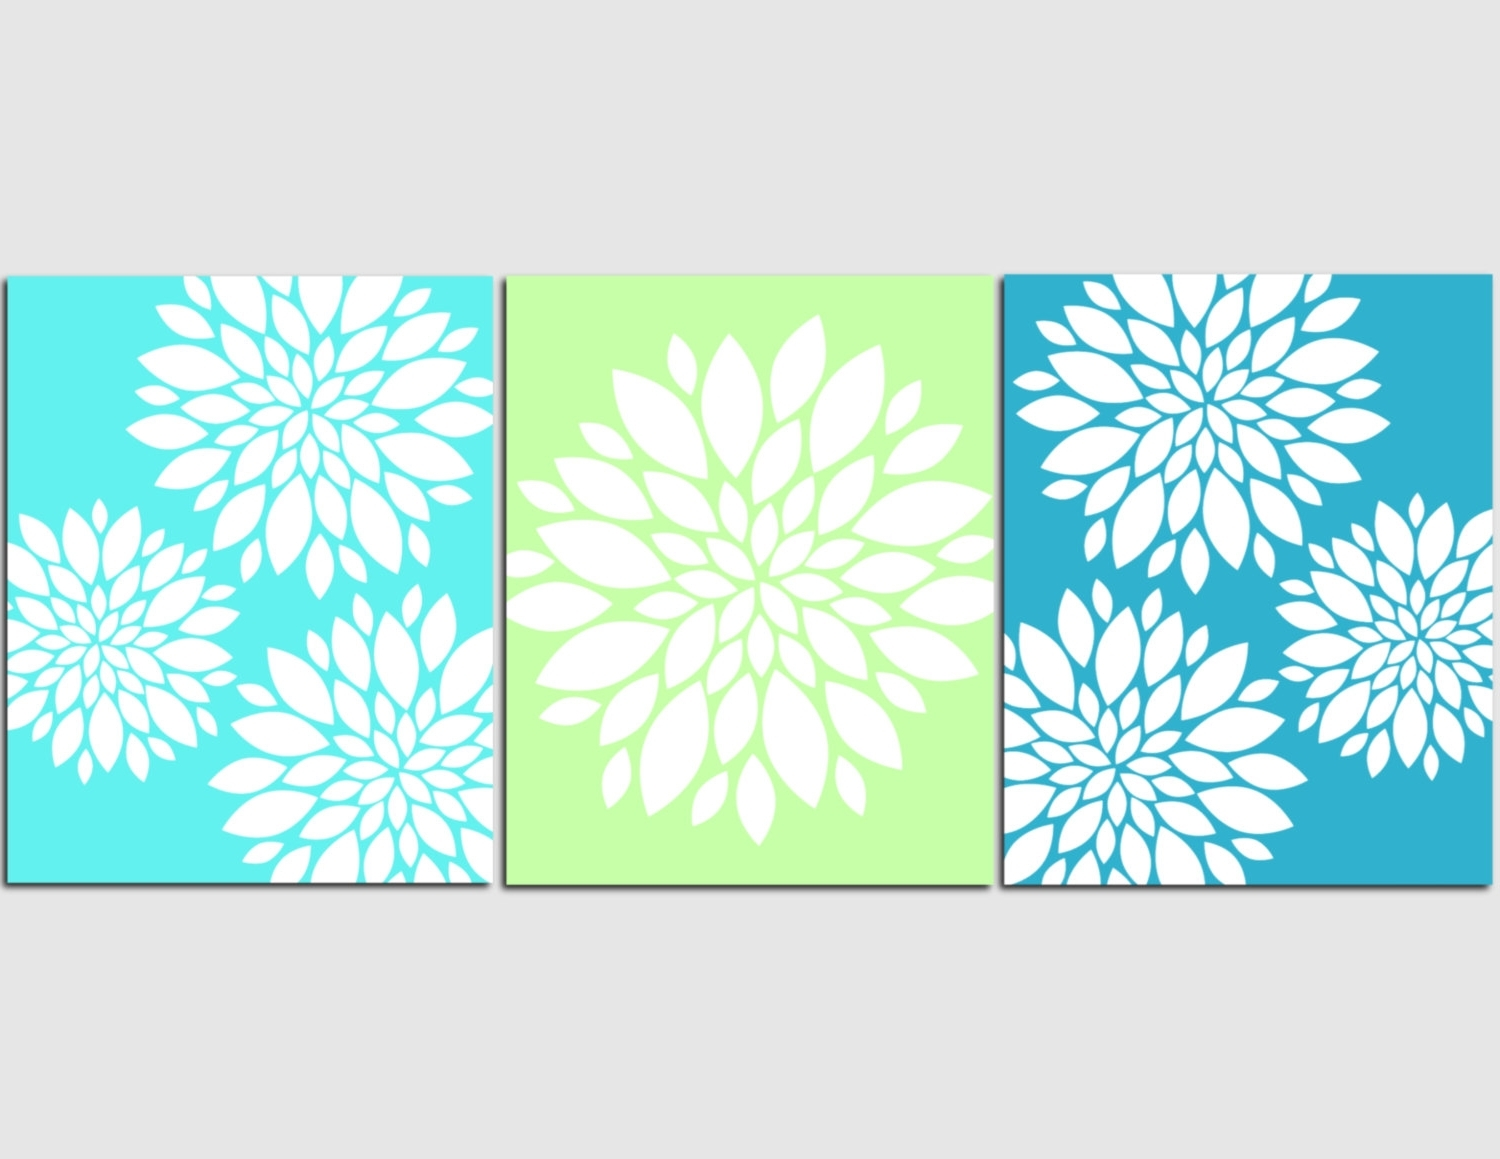 Latest Aqua Teal Lime Green Wall Art Home Decor Flower Burst, Floral With Regard To Teal And Green Wall Art (View 7 of 15)